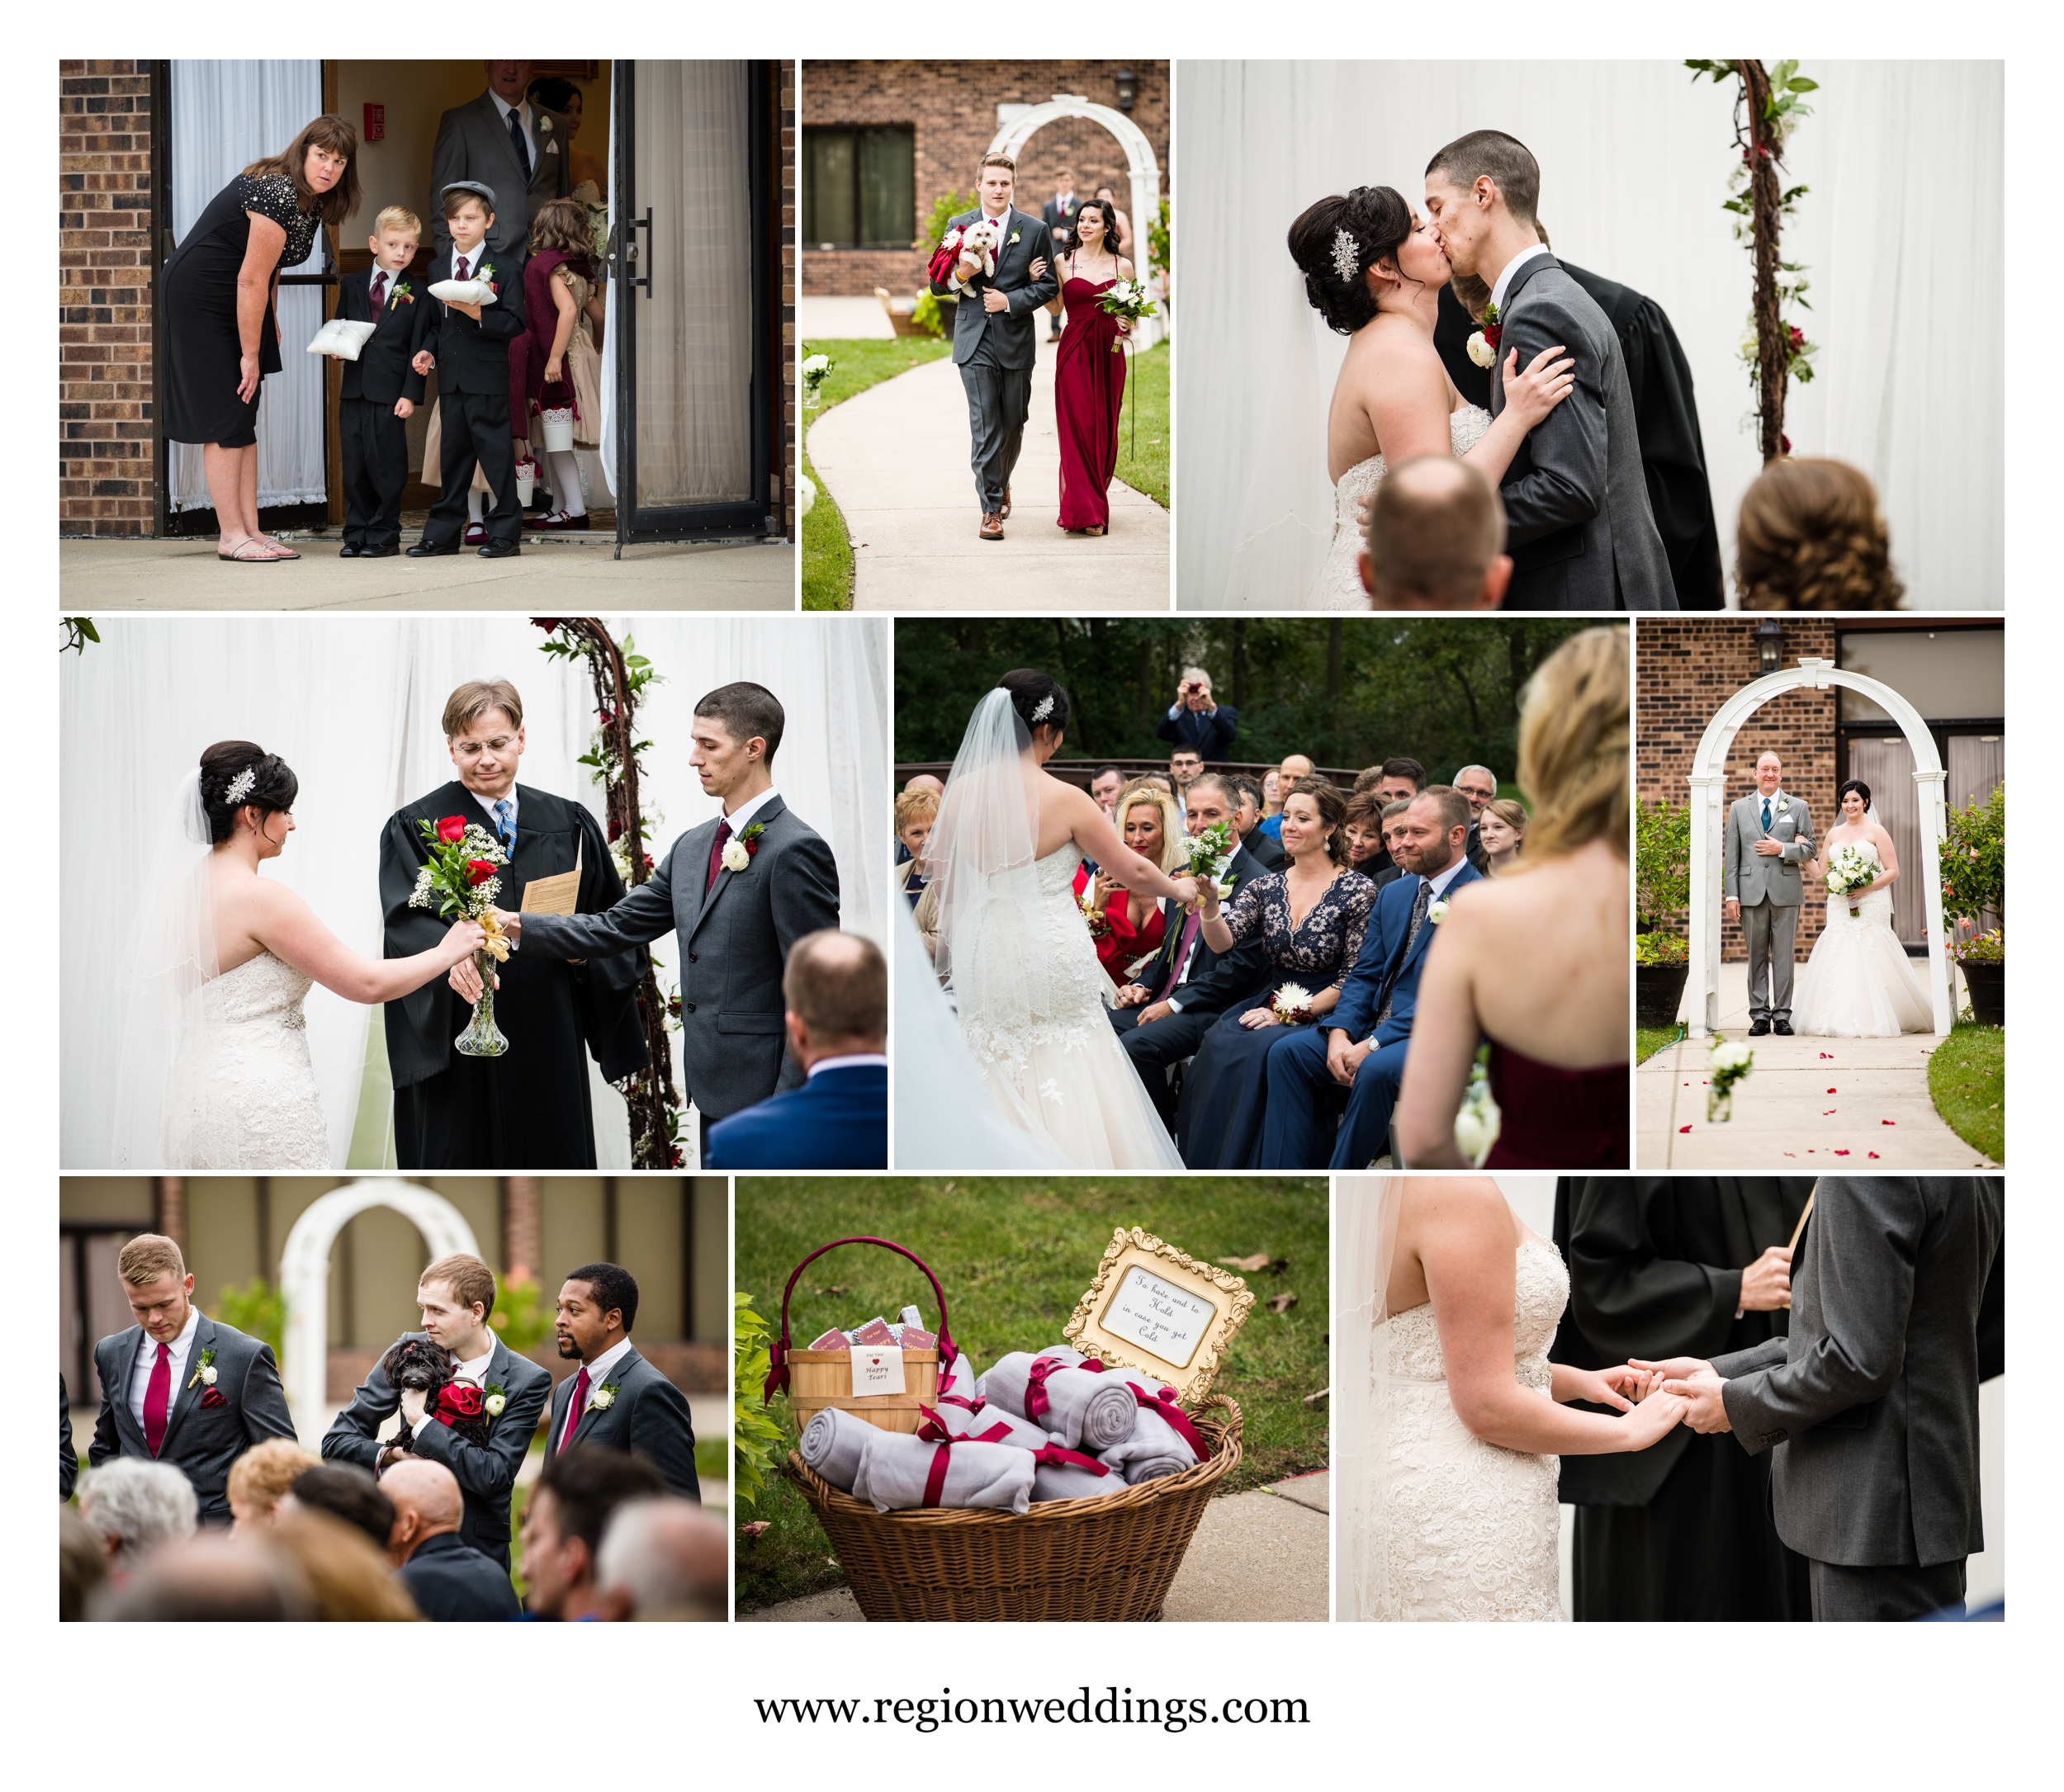 Outdoor wedding ceremony at The Croatian Center.